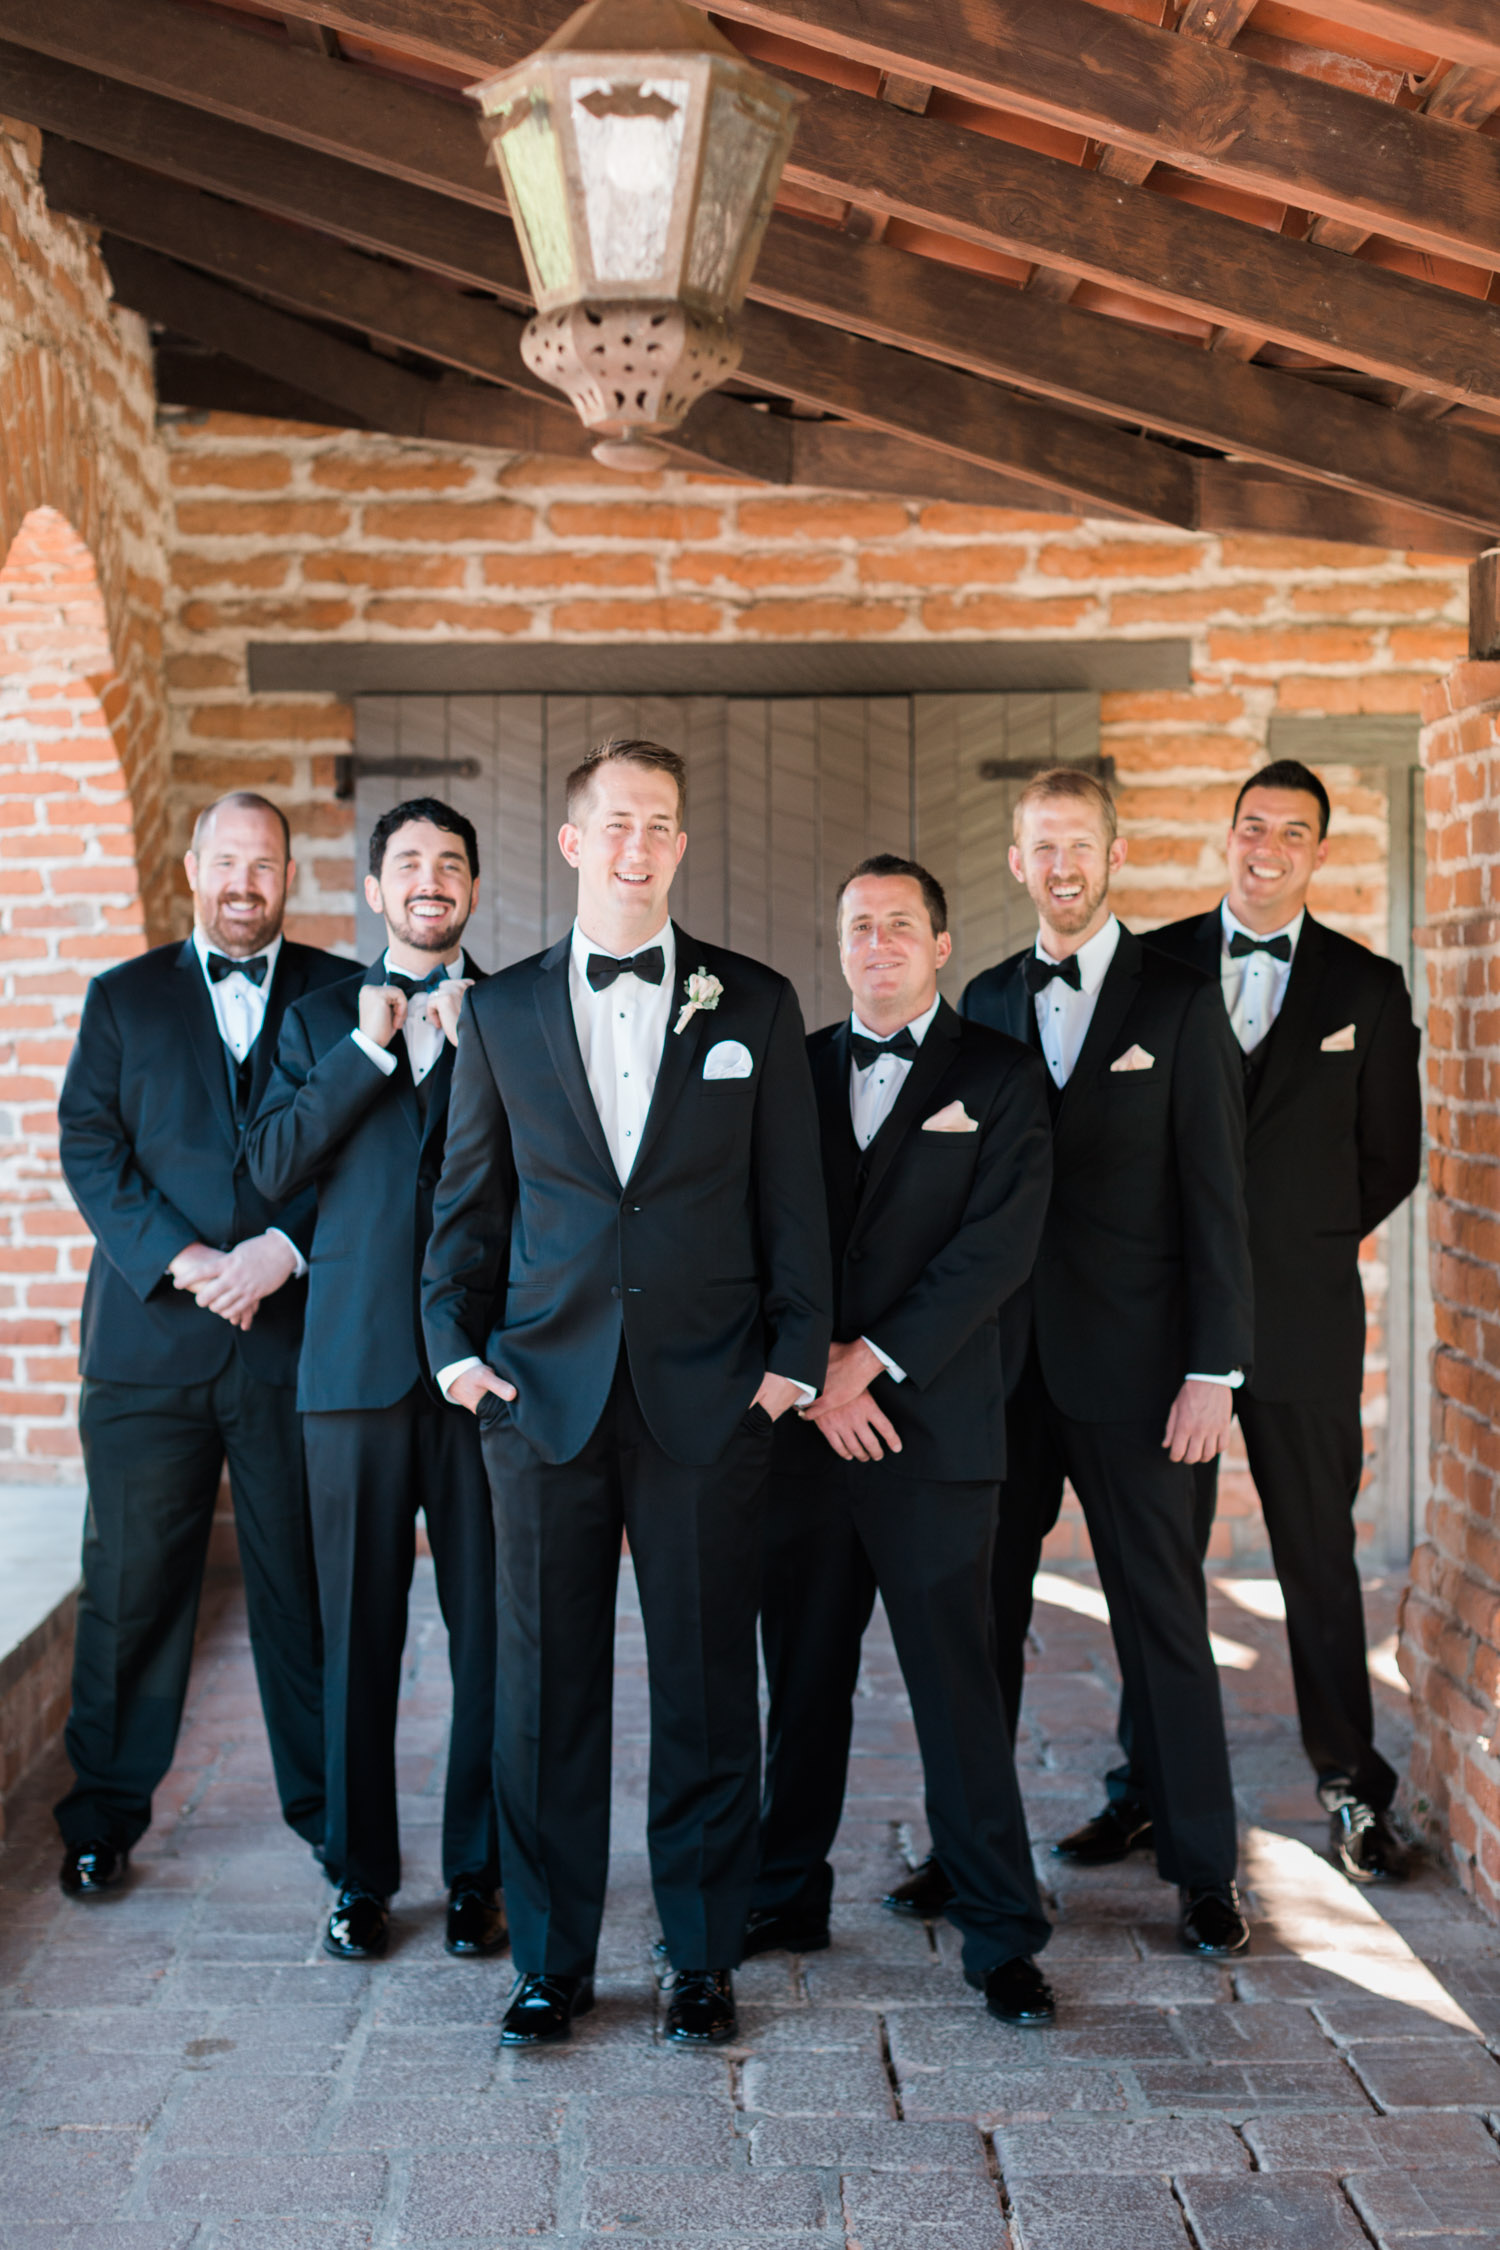 Groom with groomsmen in black tuxedos